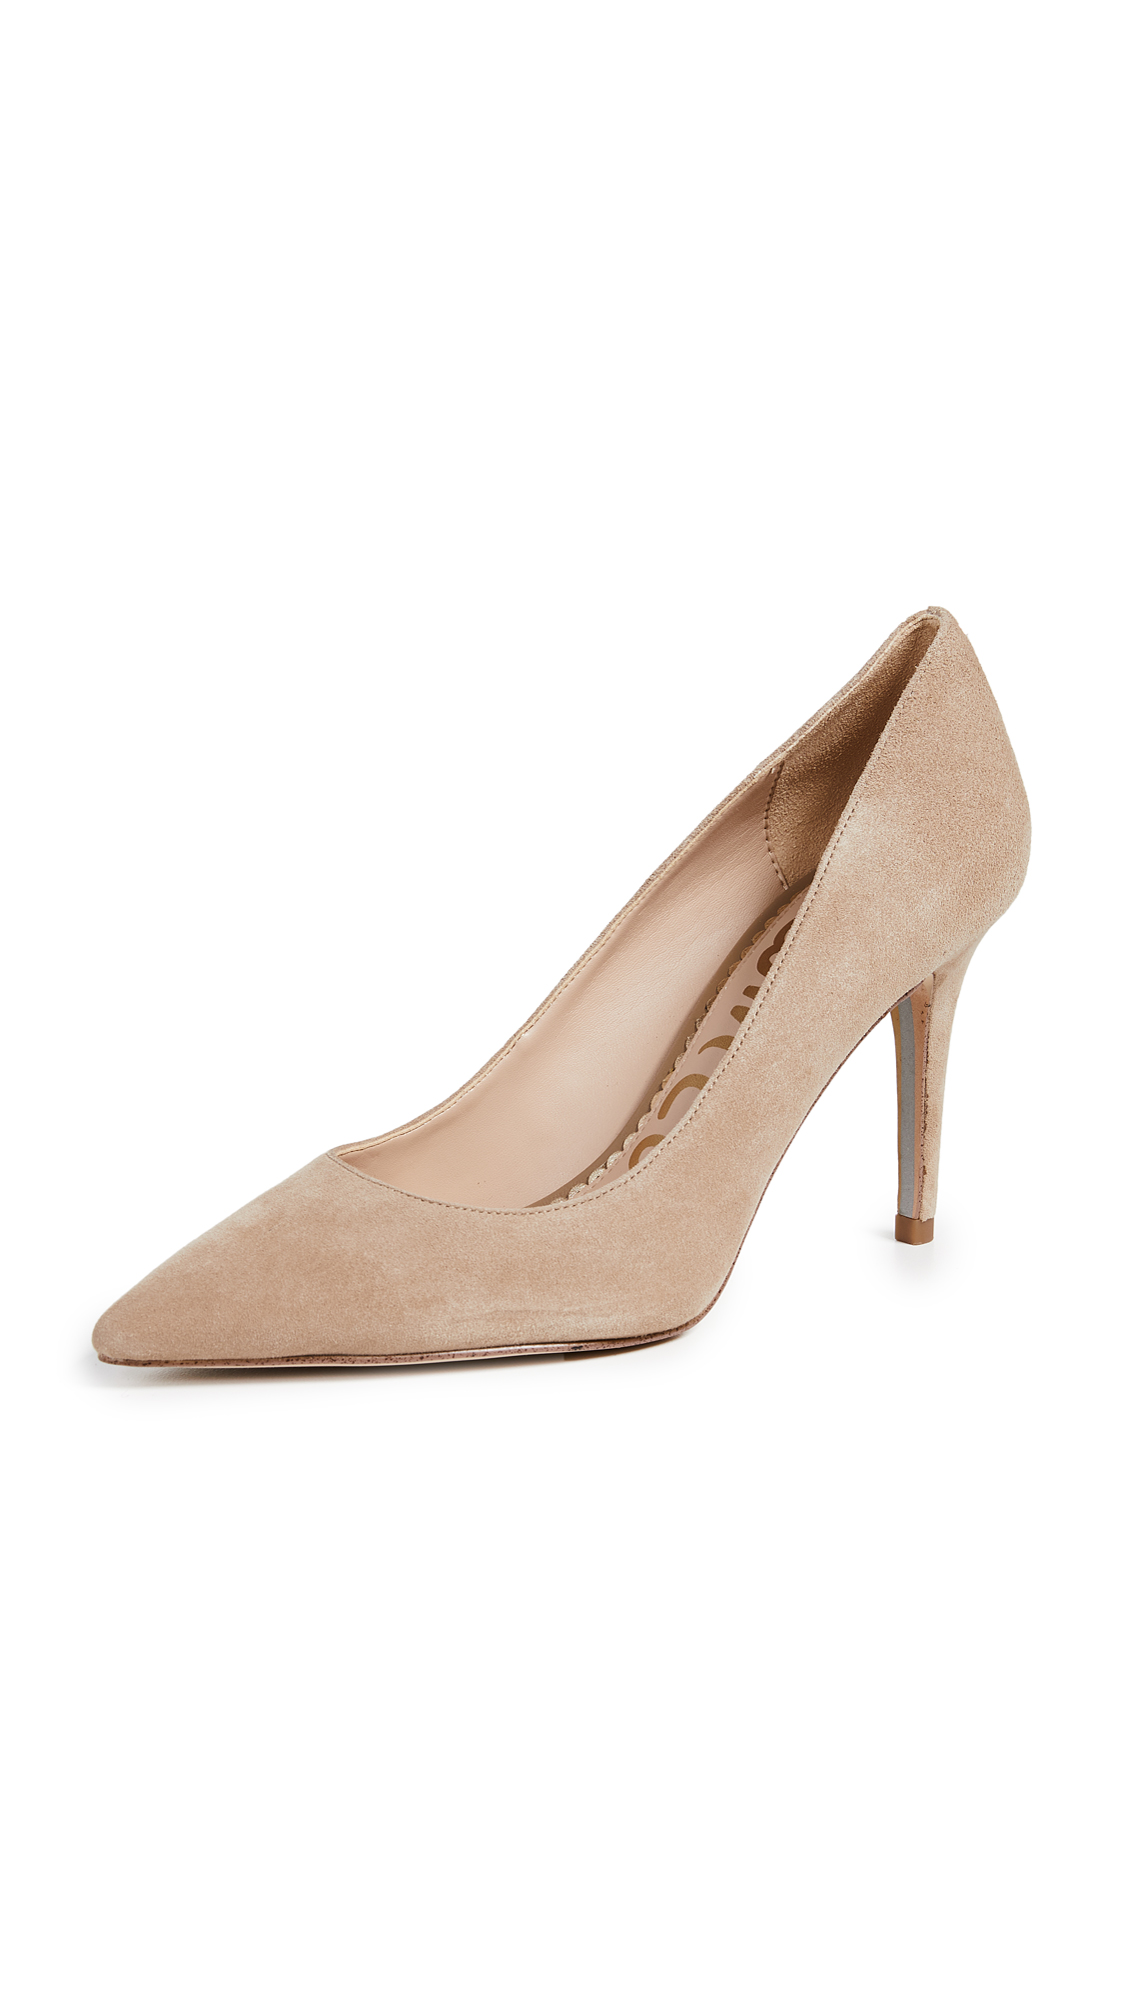 Sam Edelman Margie Pumps - Oatmeal